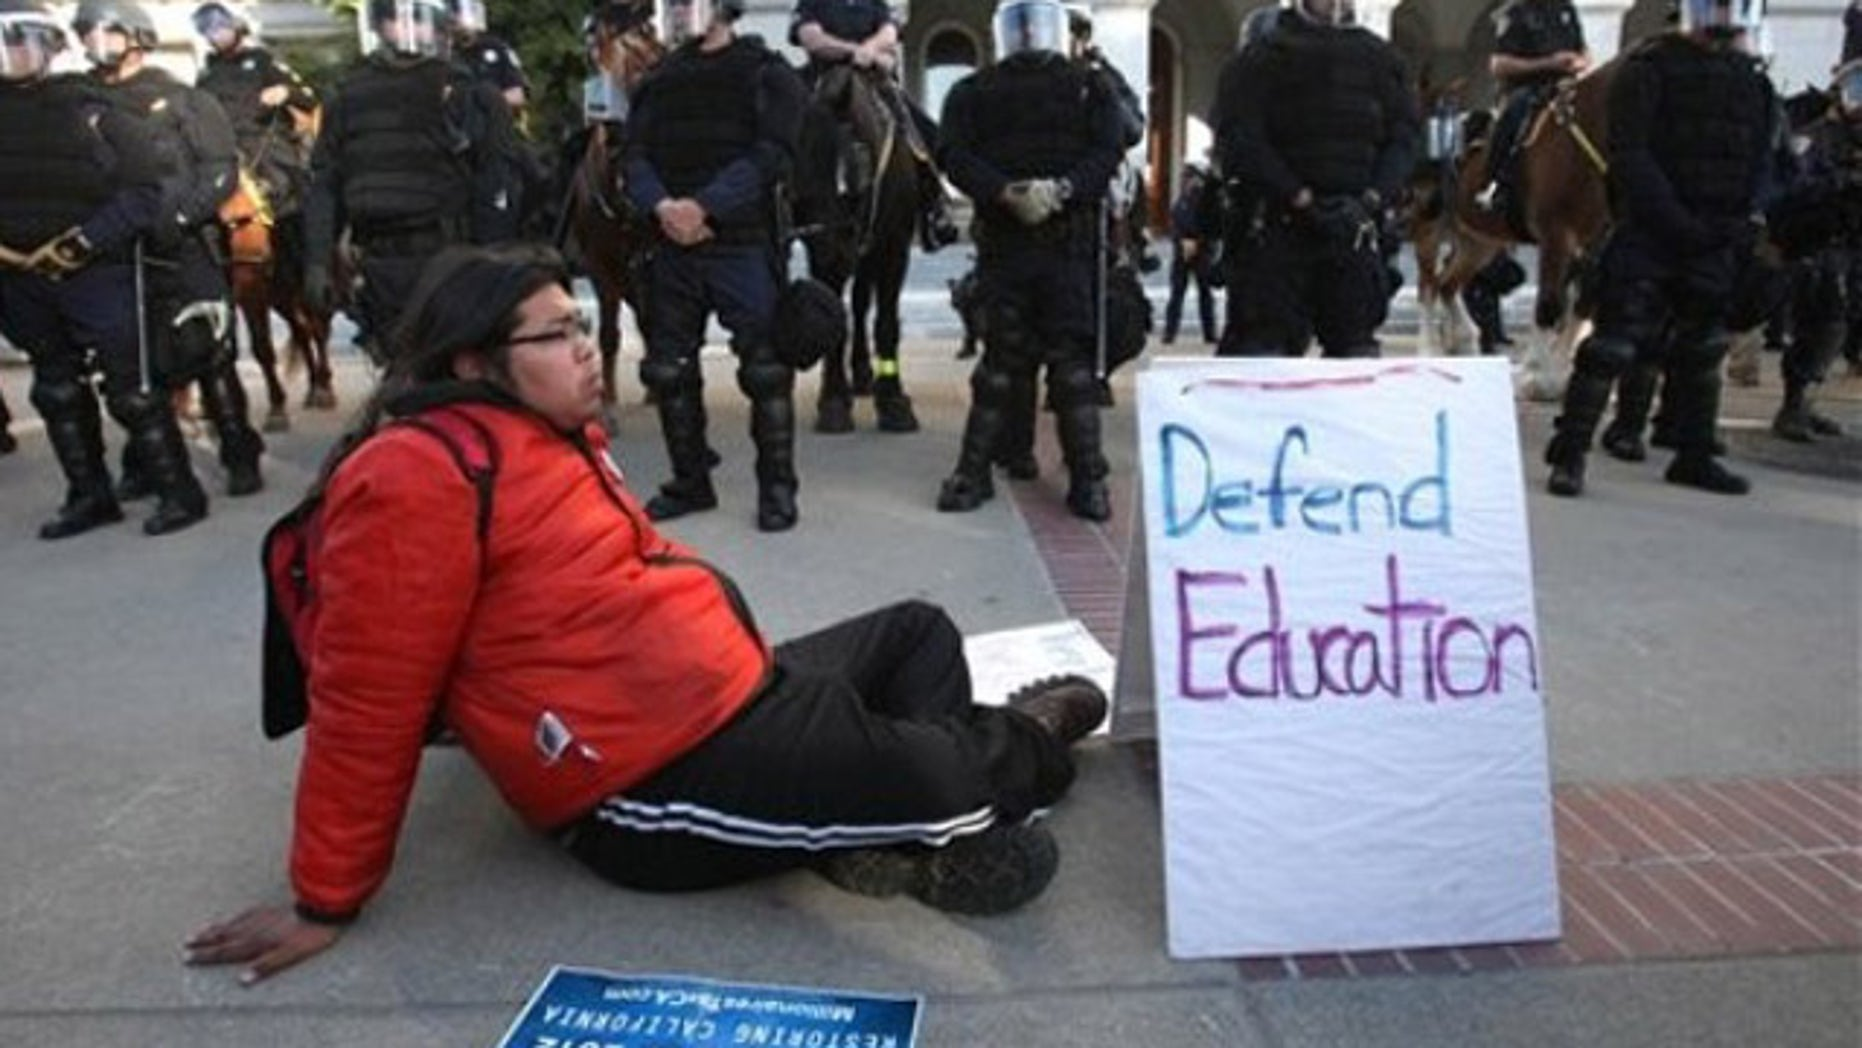 March 5, 2012: Derrick, a member of Occupy San Francisco, sits  in front of California Highway Patrol officers dressed in riot gear during a demonstration against cuts to higher education held at the Capitol in Sacramento, Calif.